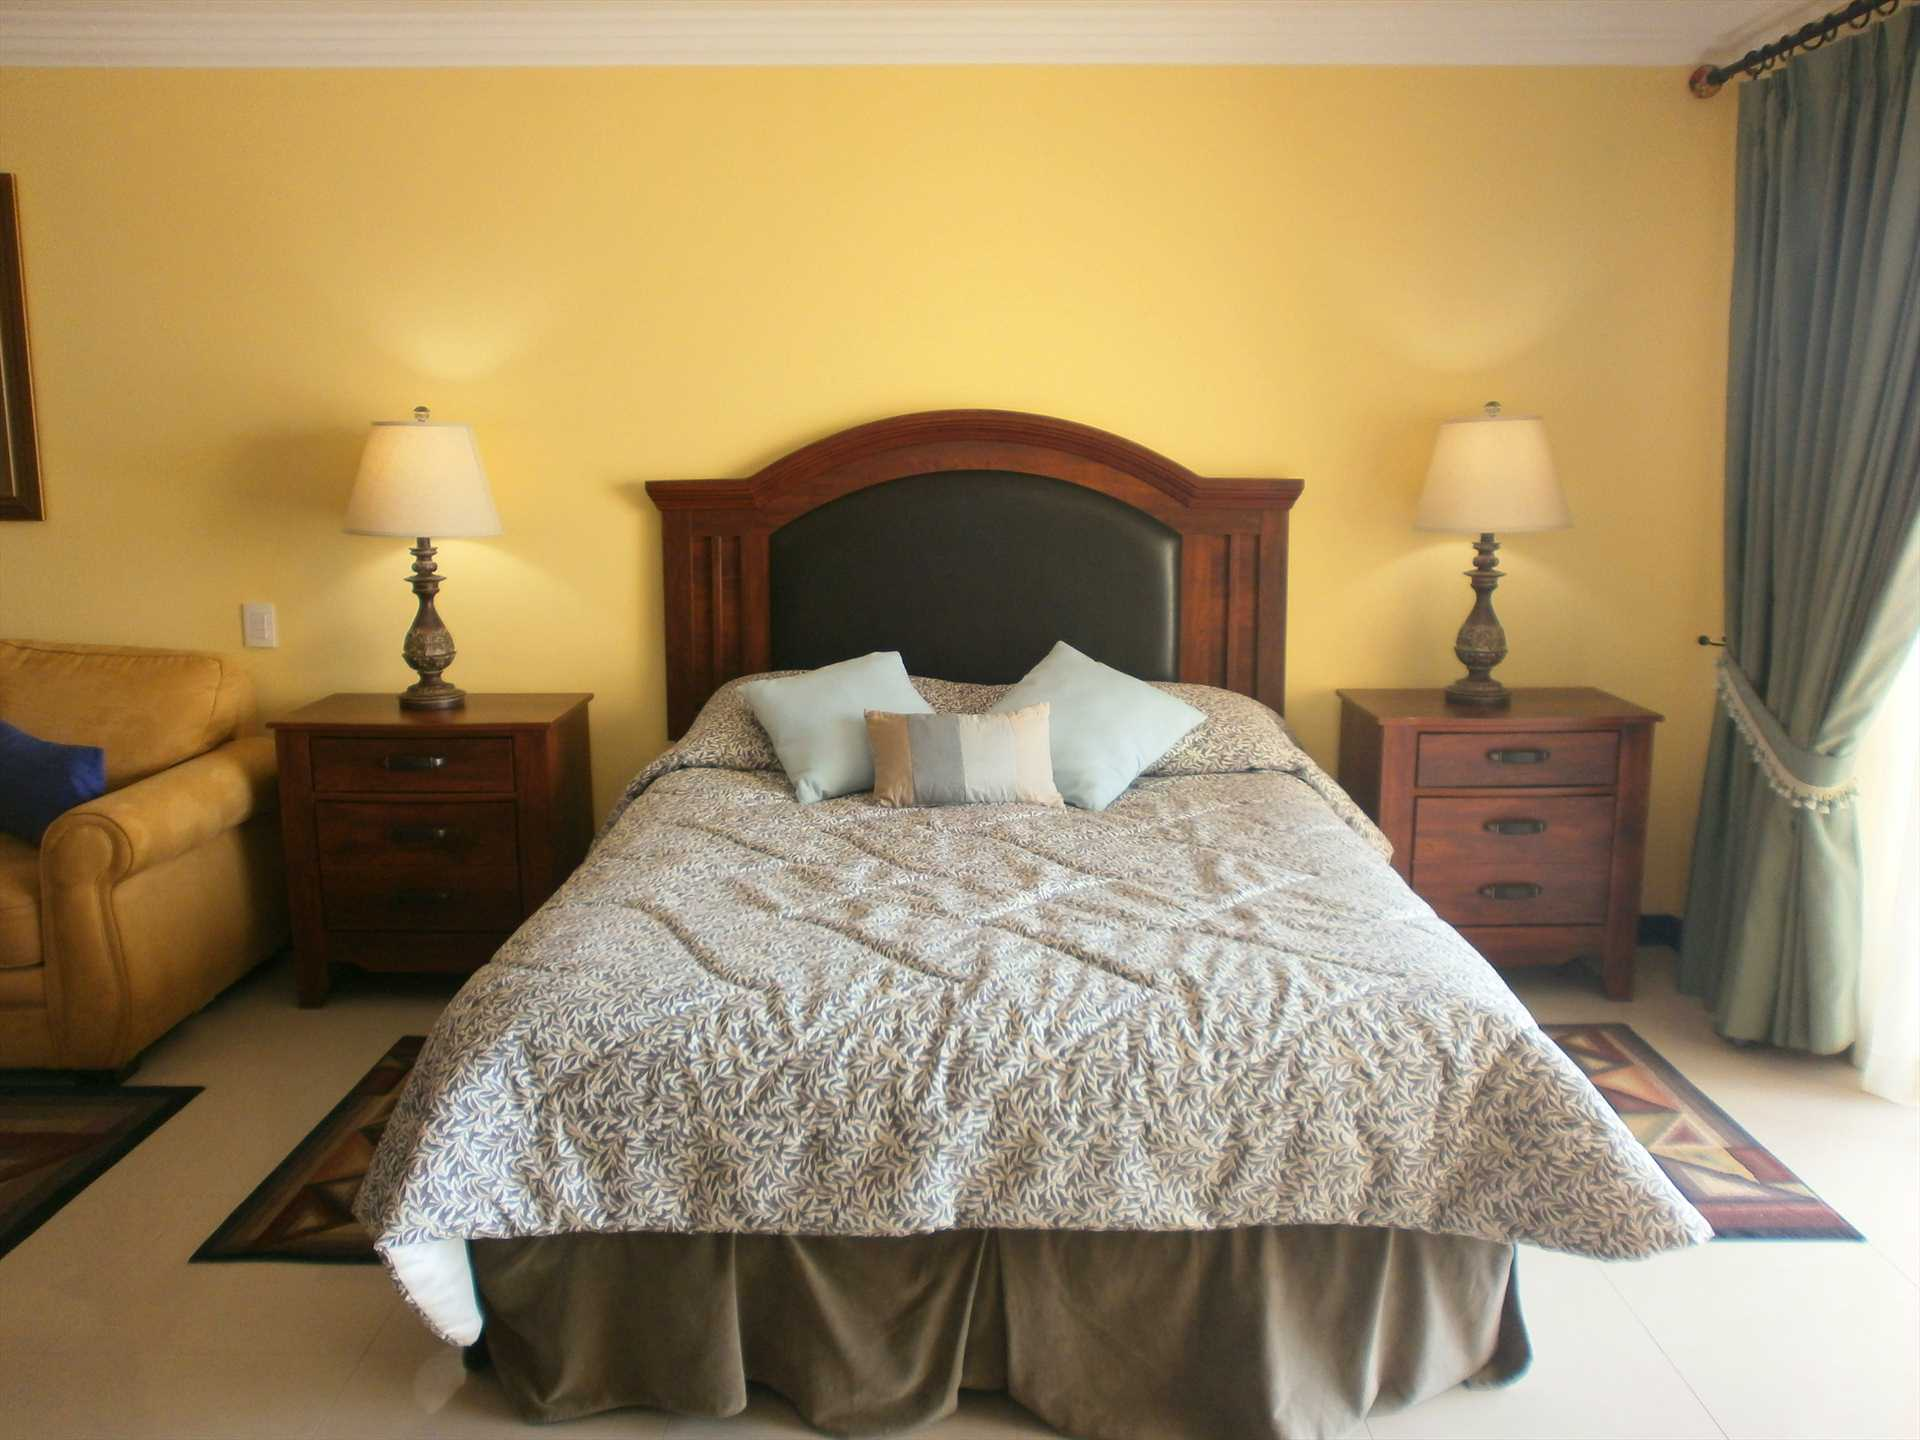 Queen-size bed in studio room.